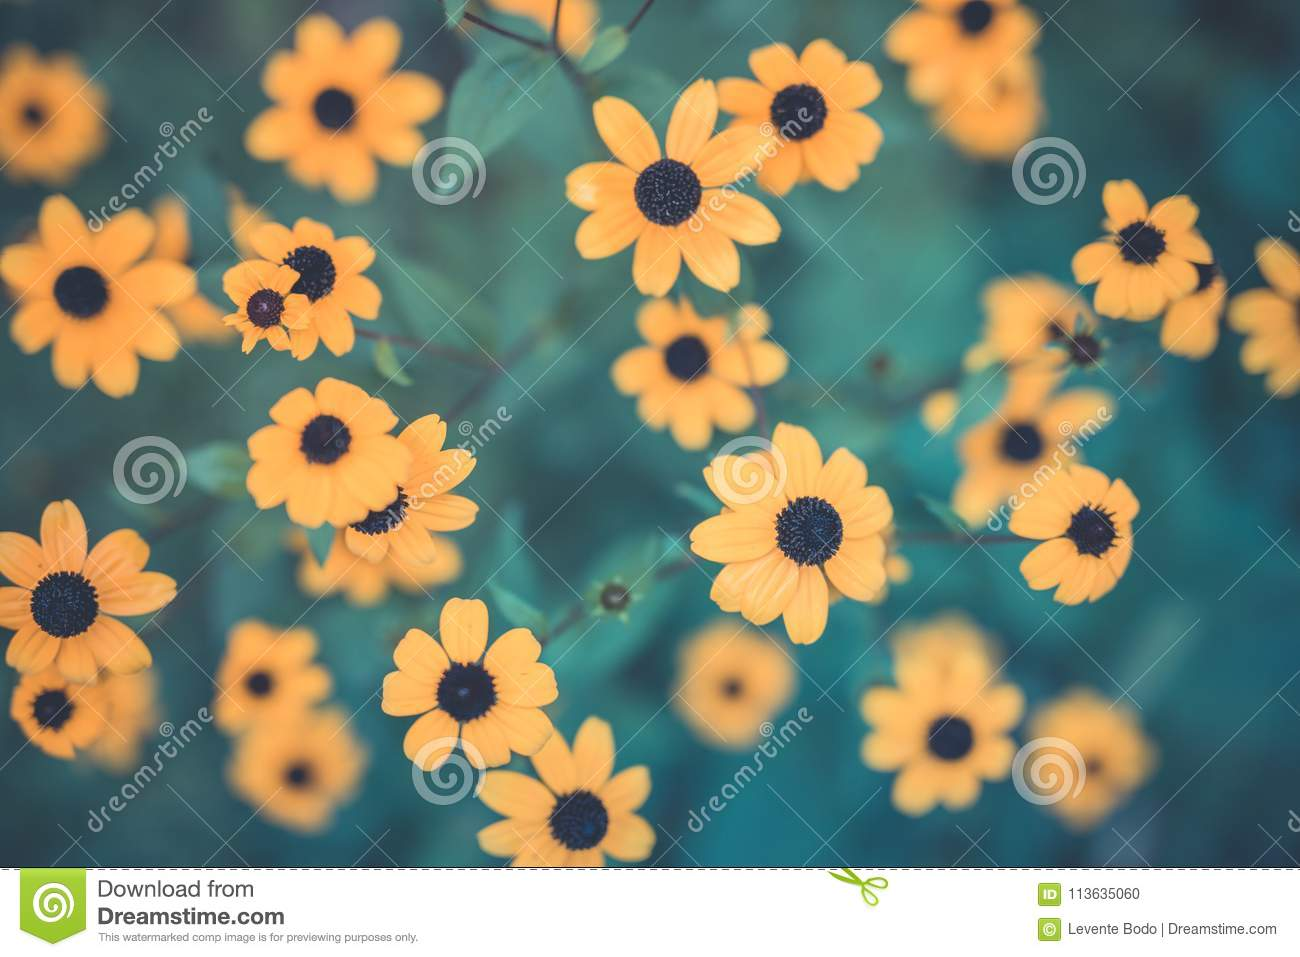 Summer flowers banner. Yellow flowers under sunlight, happy moody blooming close-up